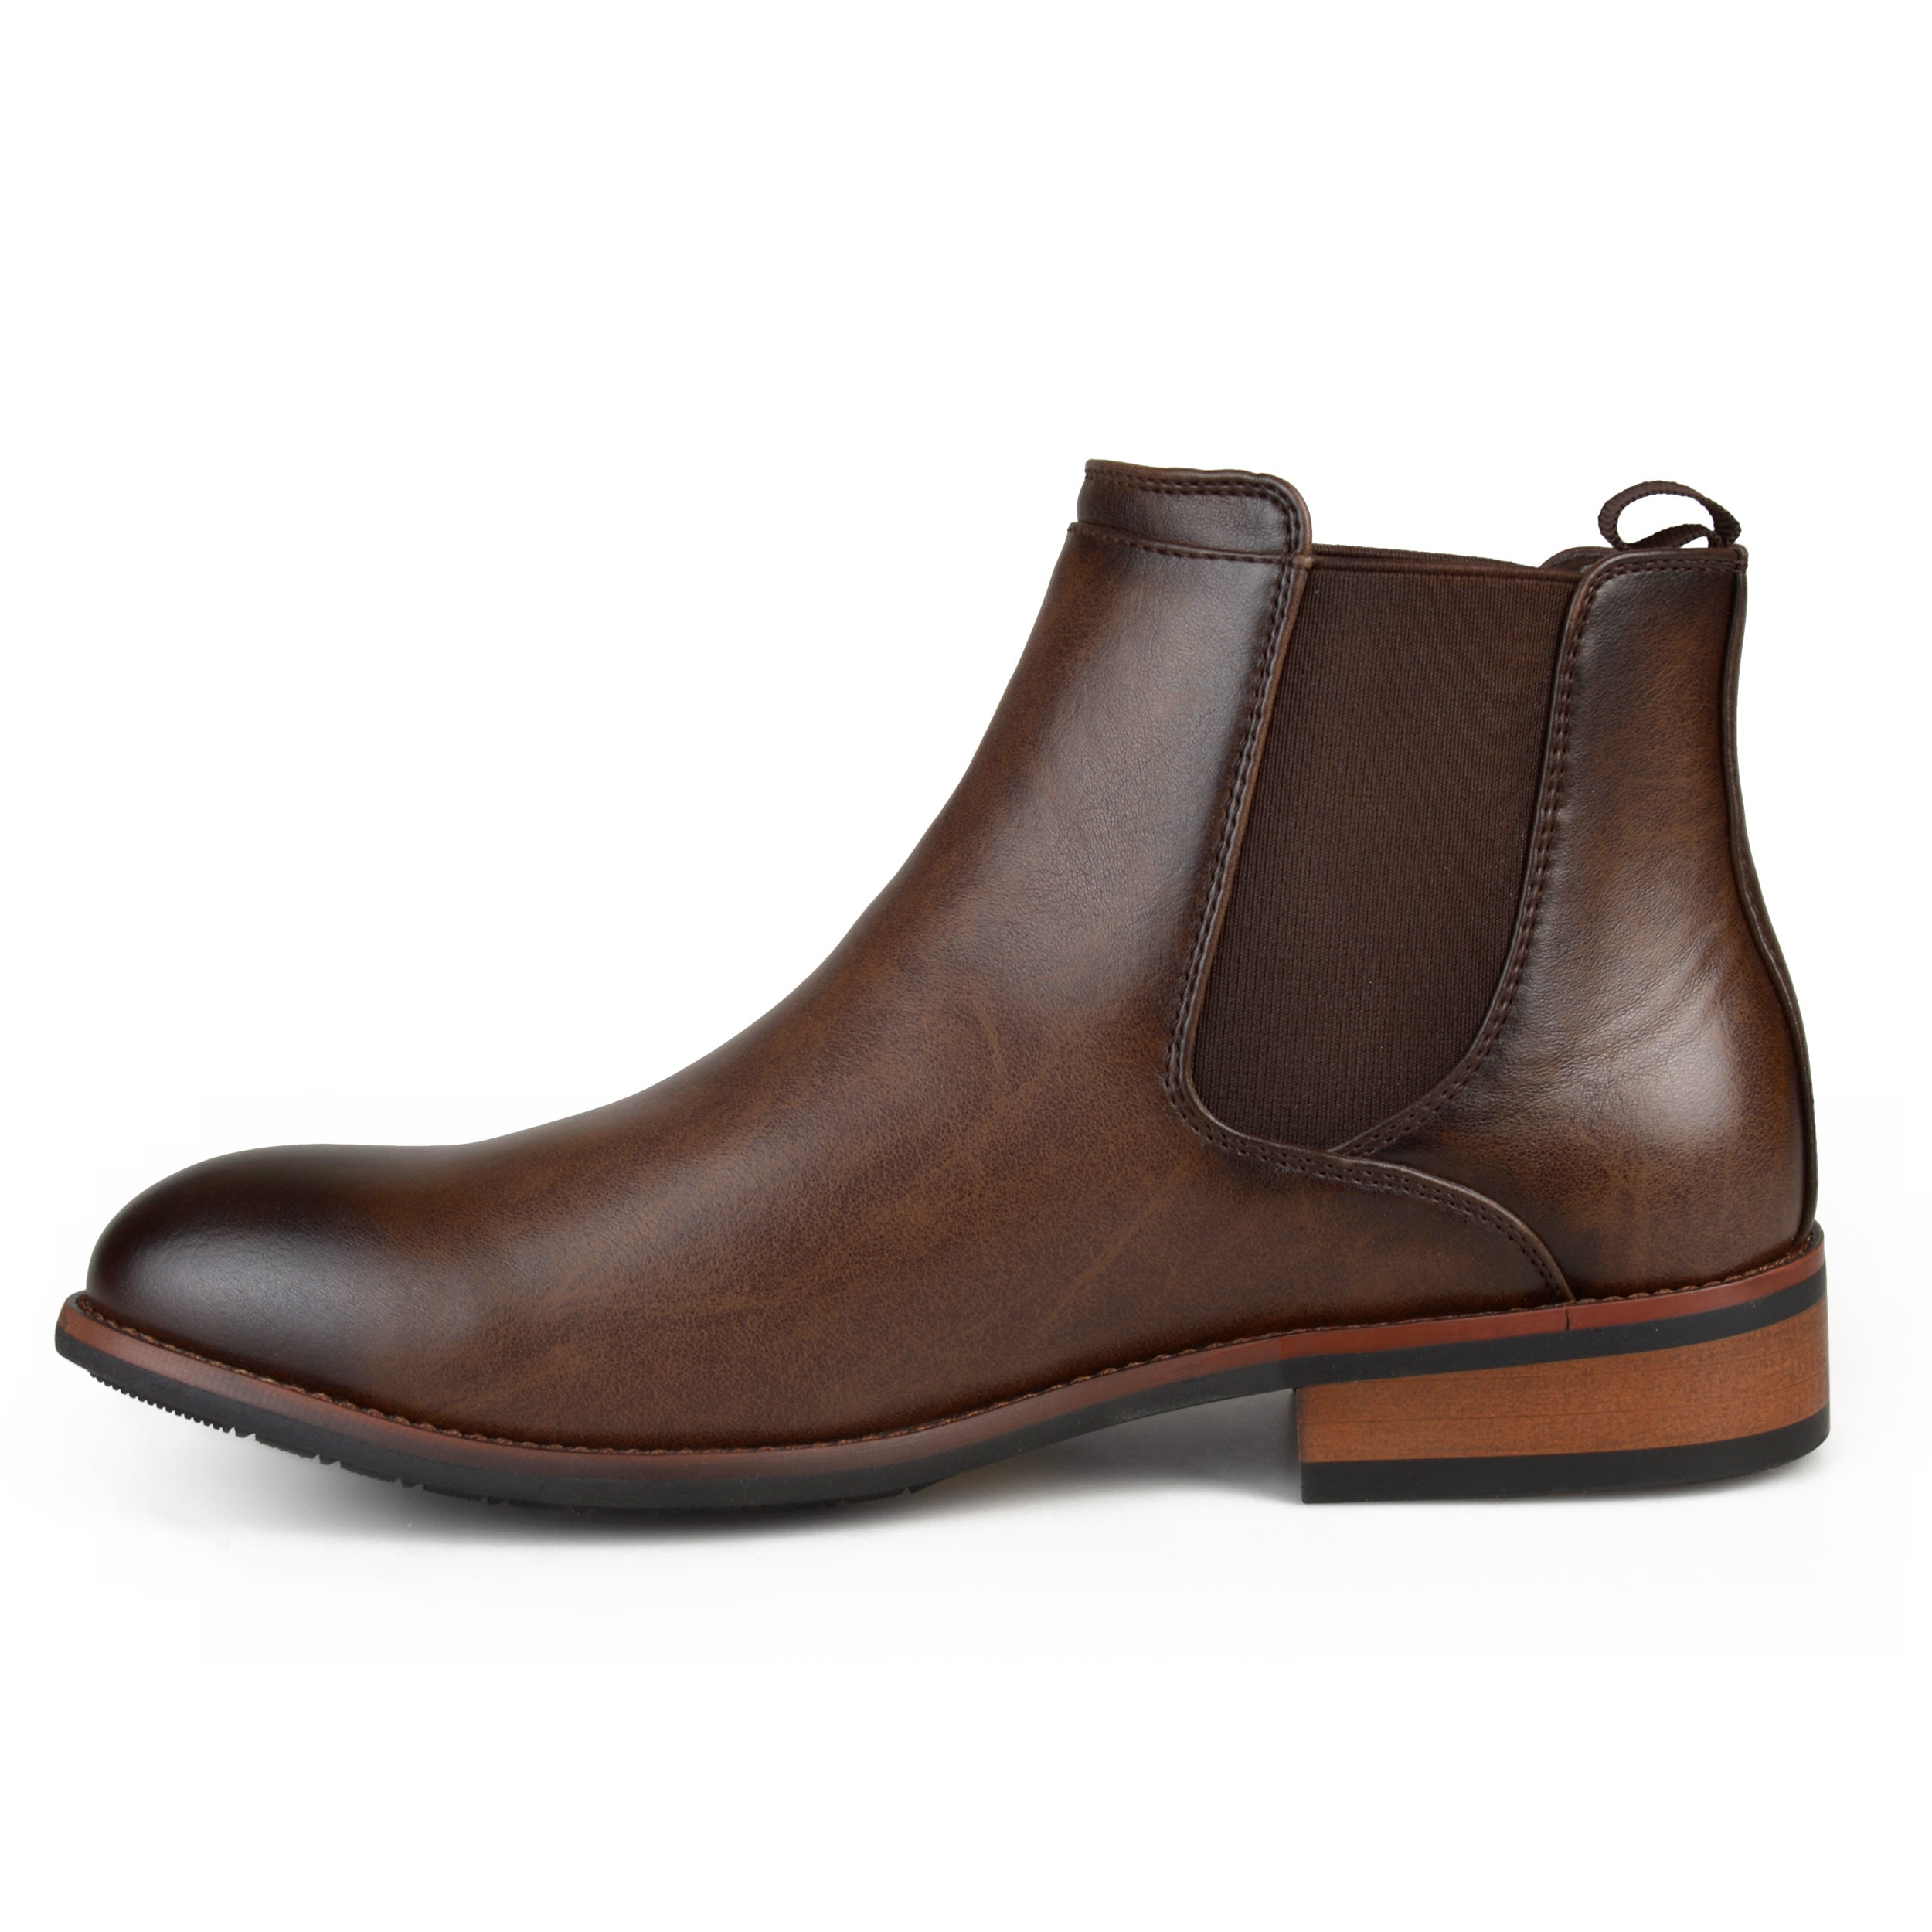 eca411ca348 Shop Vance Co. Men's 'Landon' Round Toe High Top Chelsea Dress Boots - Free  Shipping Today - Overstock - 12706210